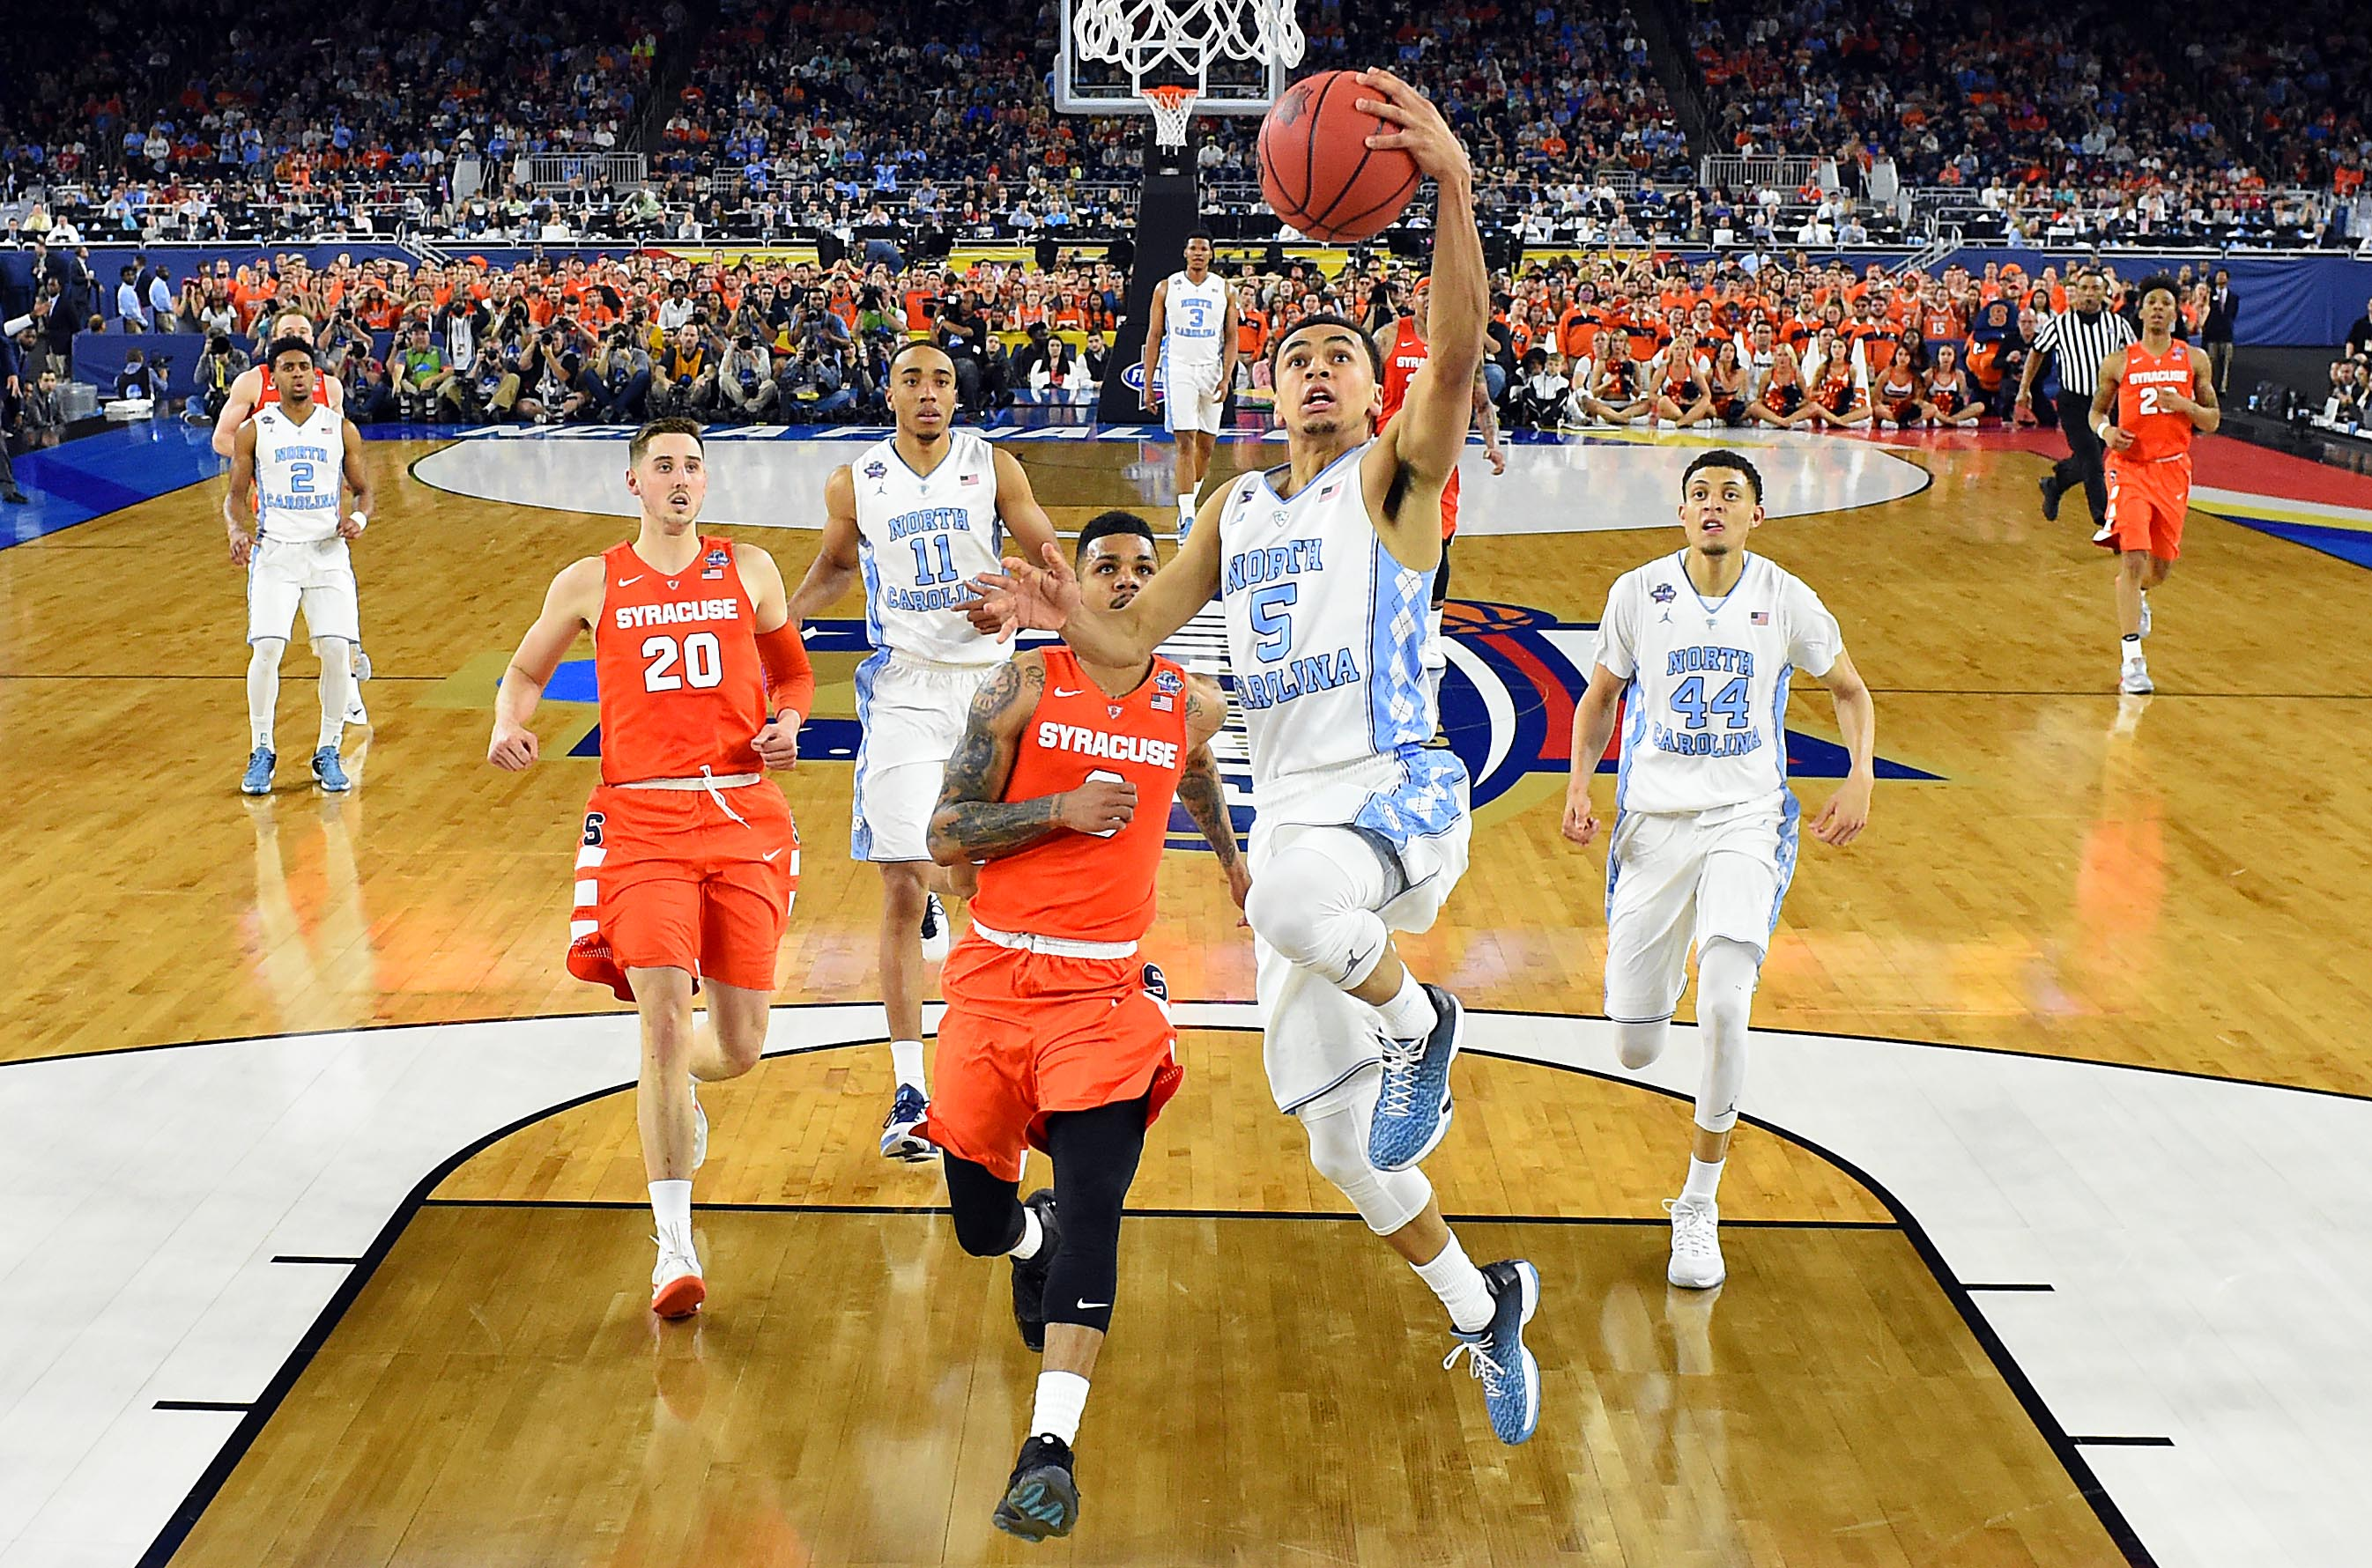 North Carolina, Villanova roll into title game